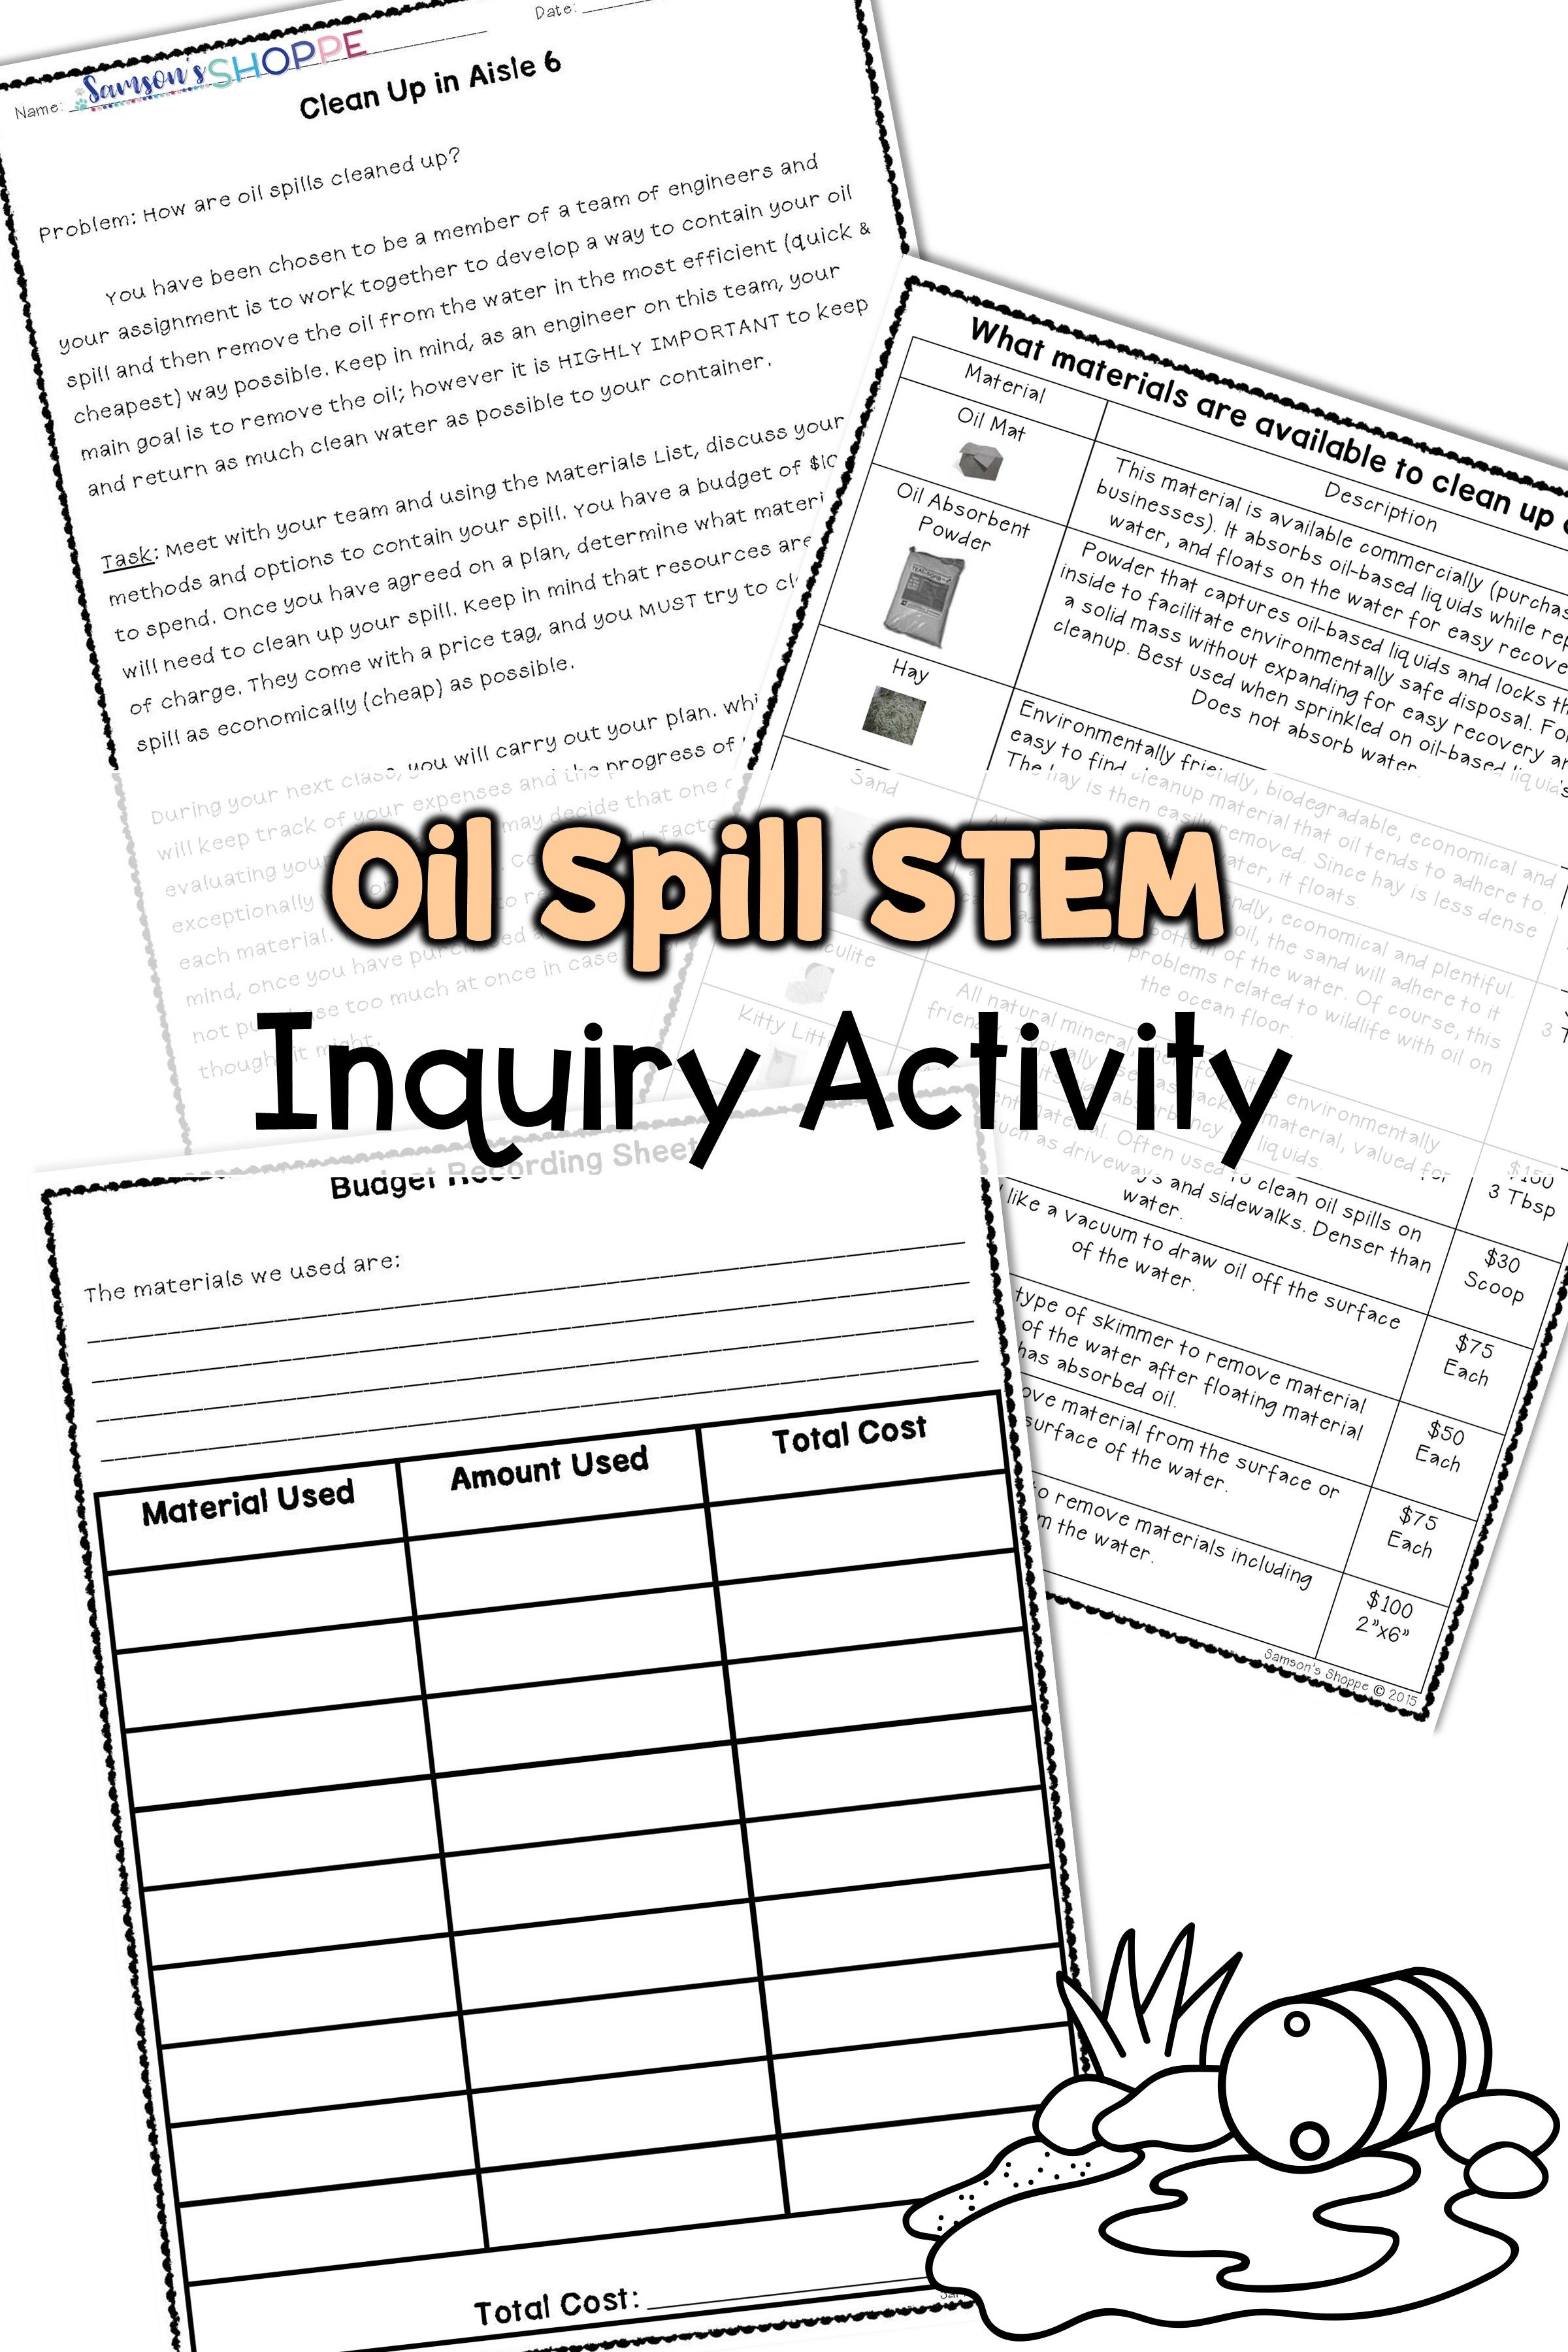 Oil Spill Inquiry Stem Activity